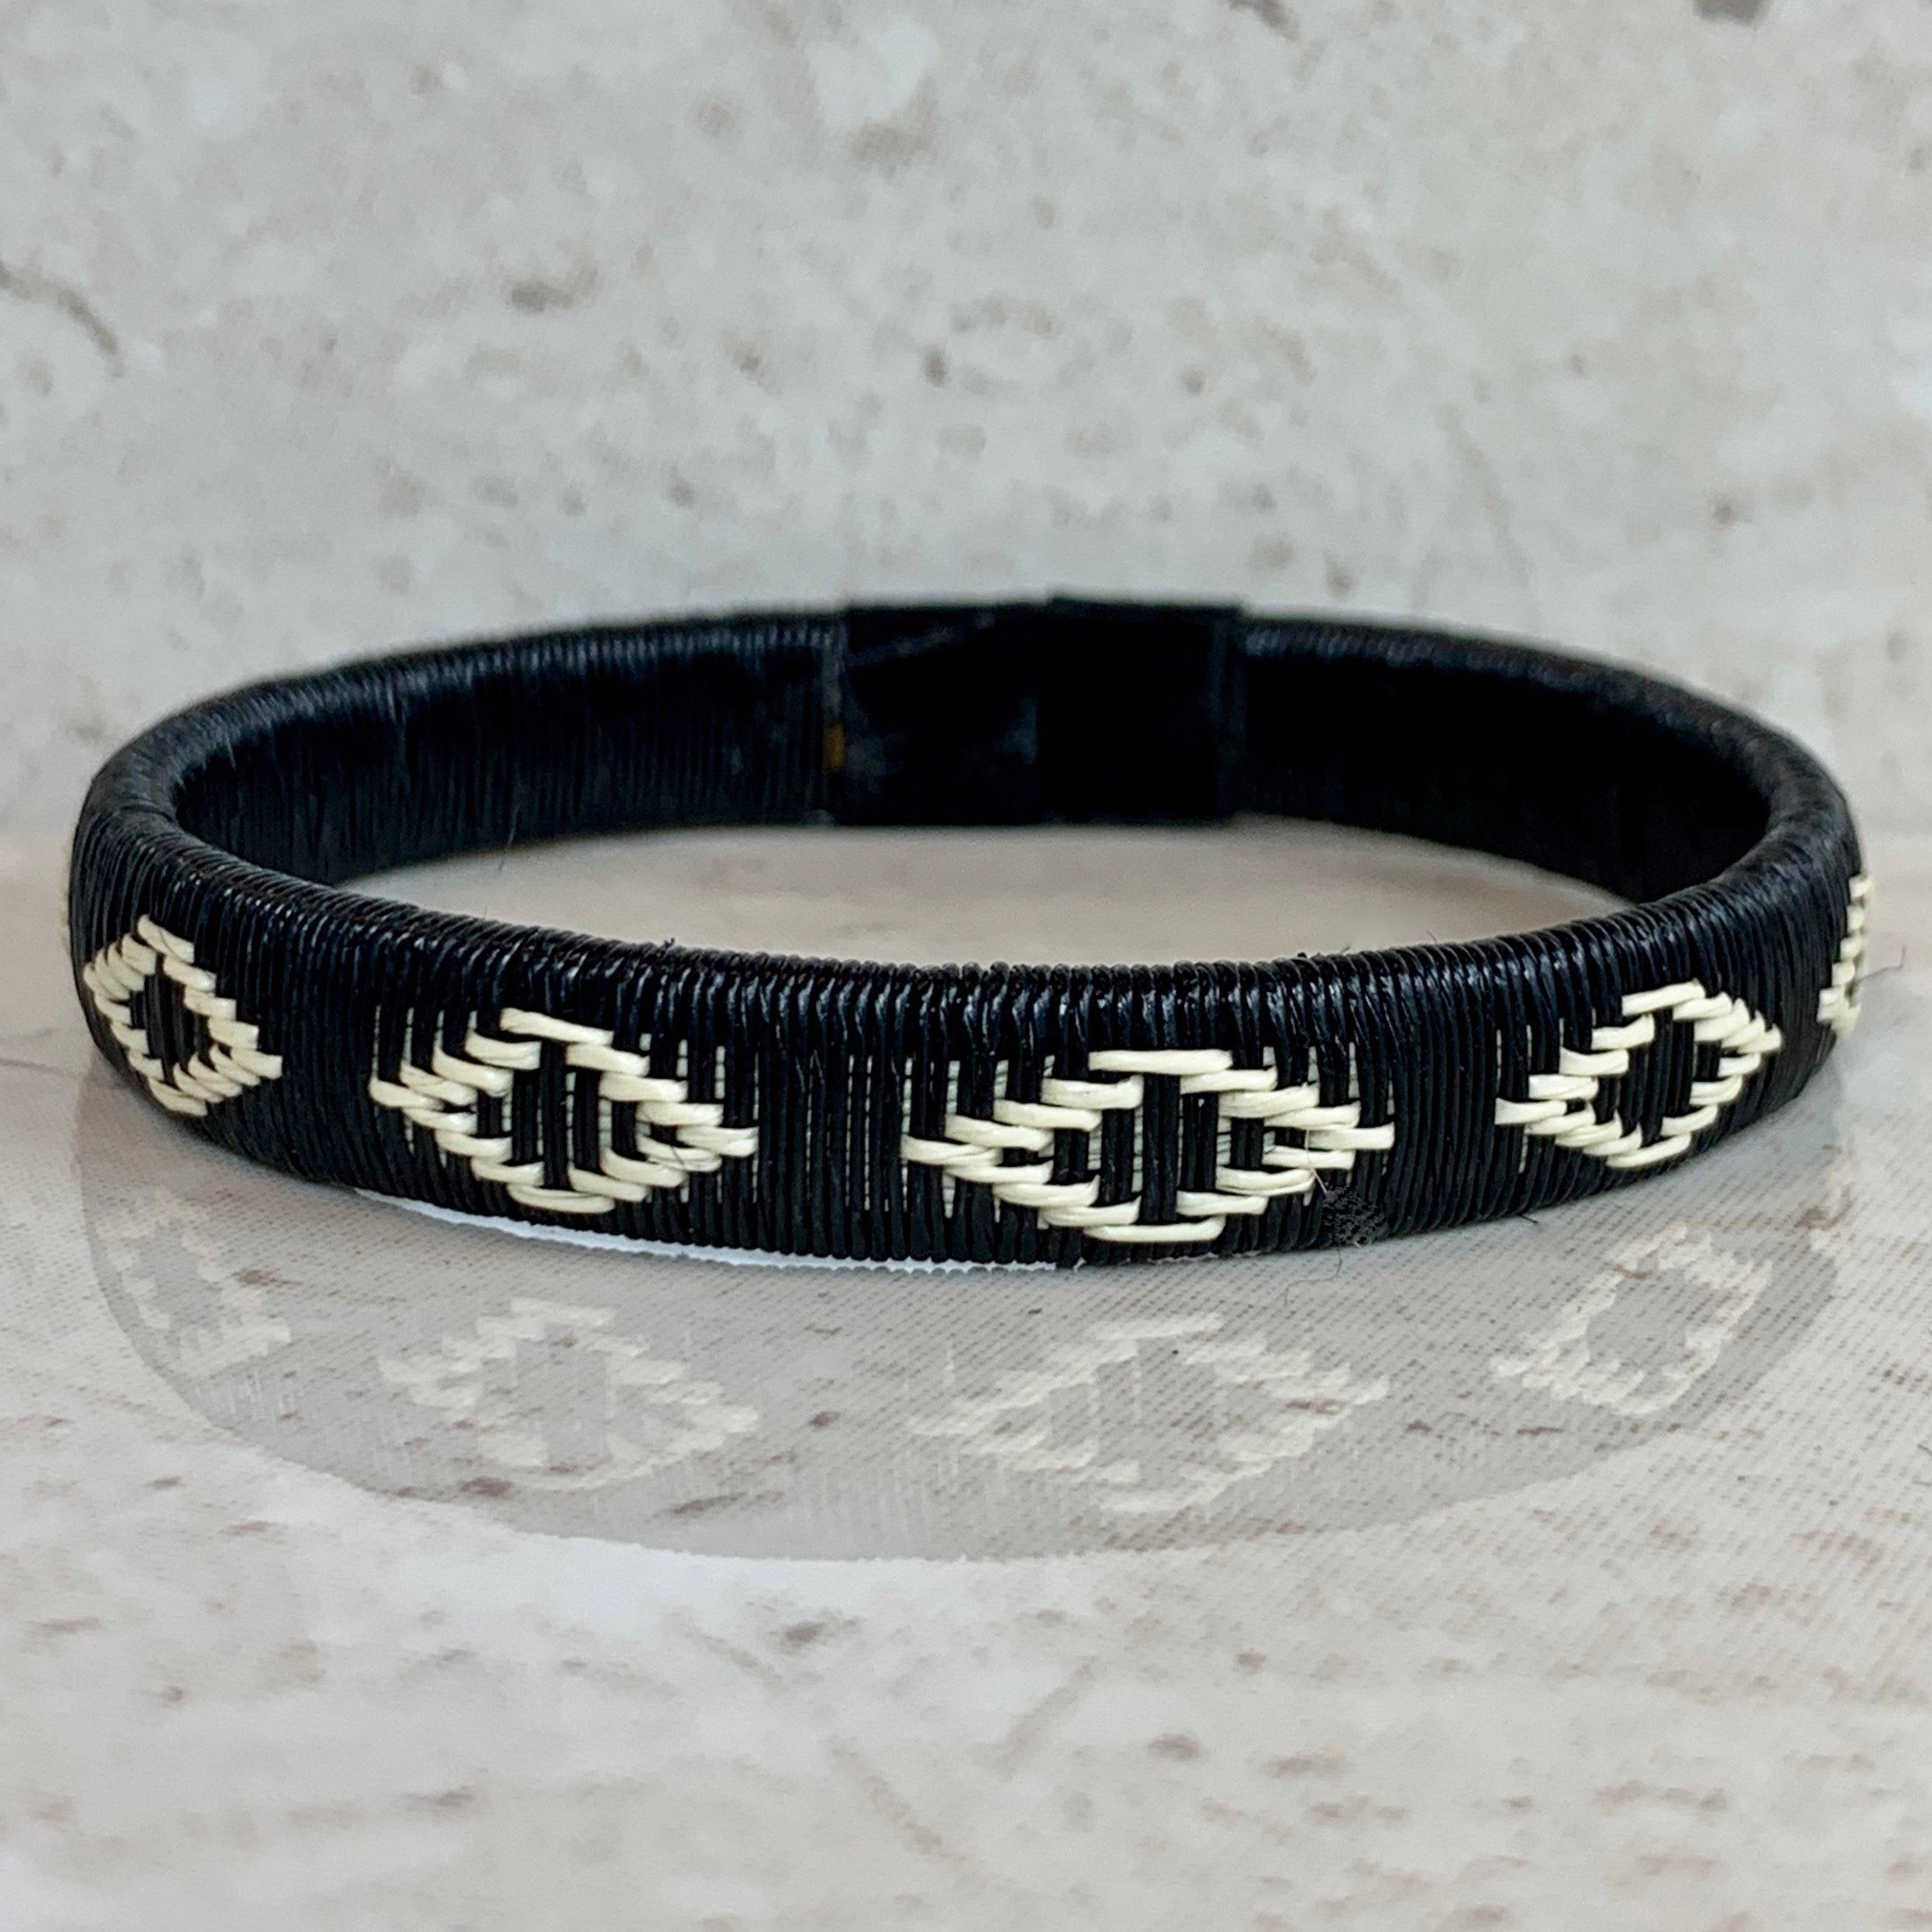 Black & White Friendship Bracelet island Colombia sustainable ethical casual